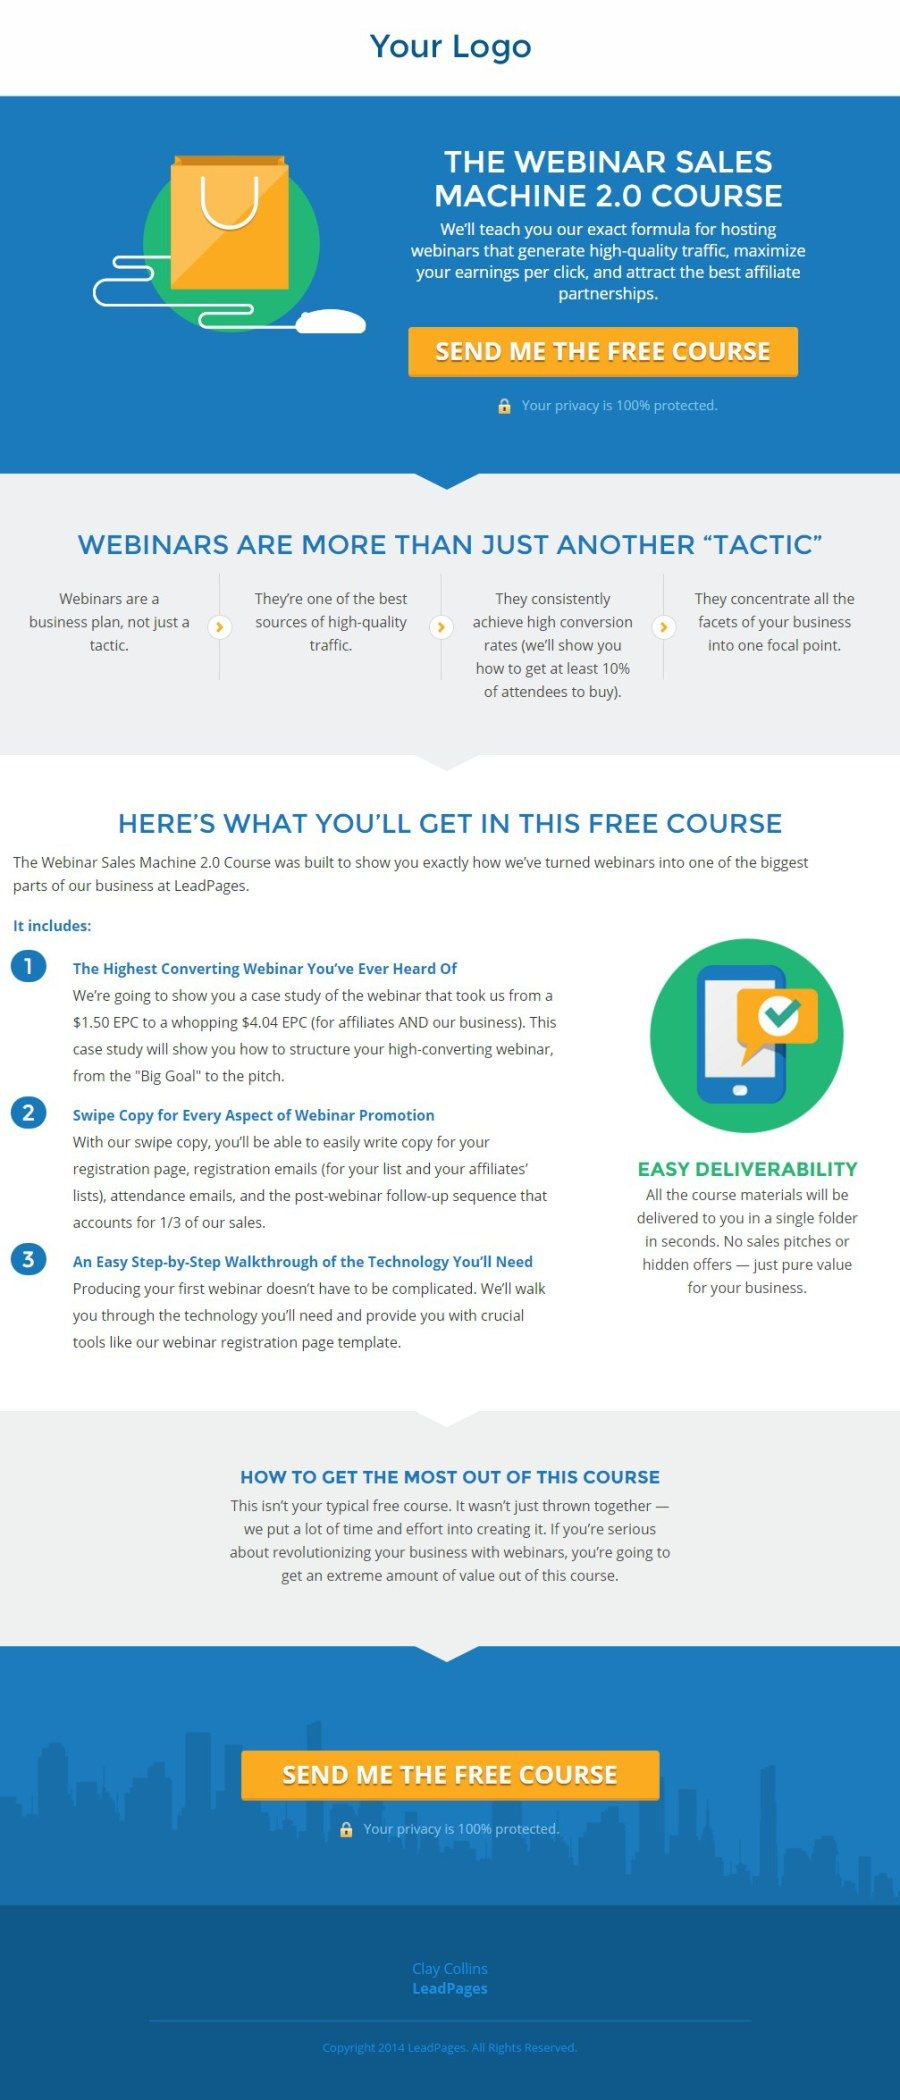 White Paper Landing Page   Free Template  Free White Paper Templates